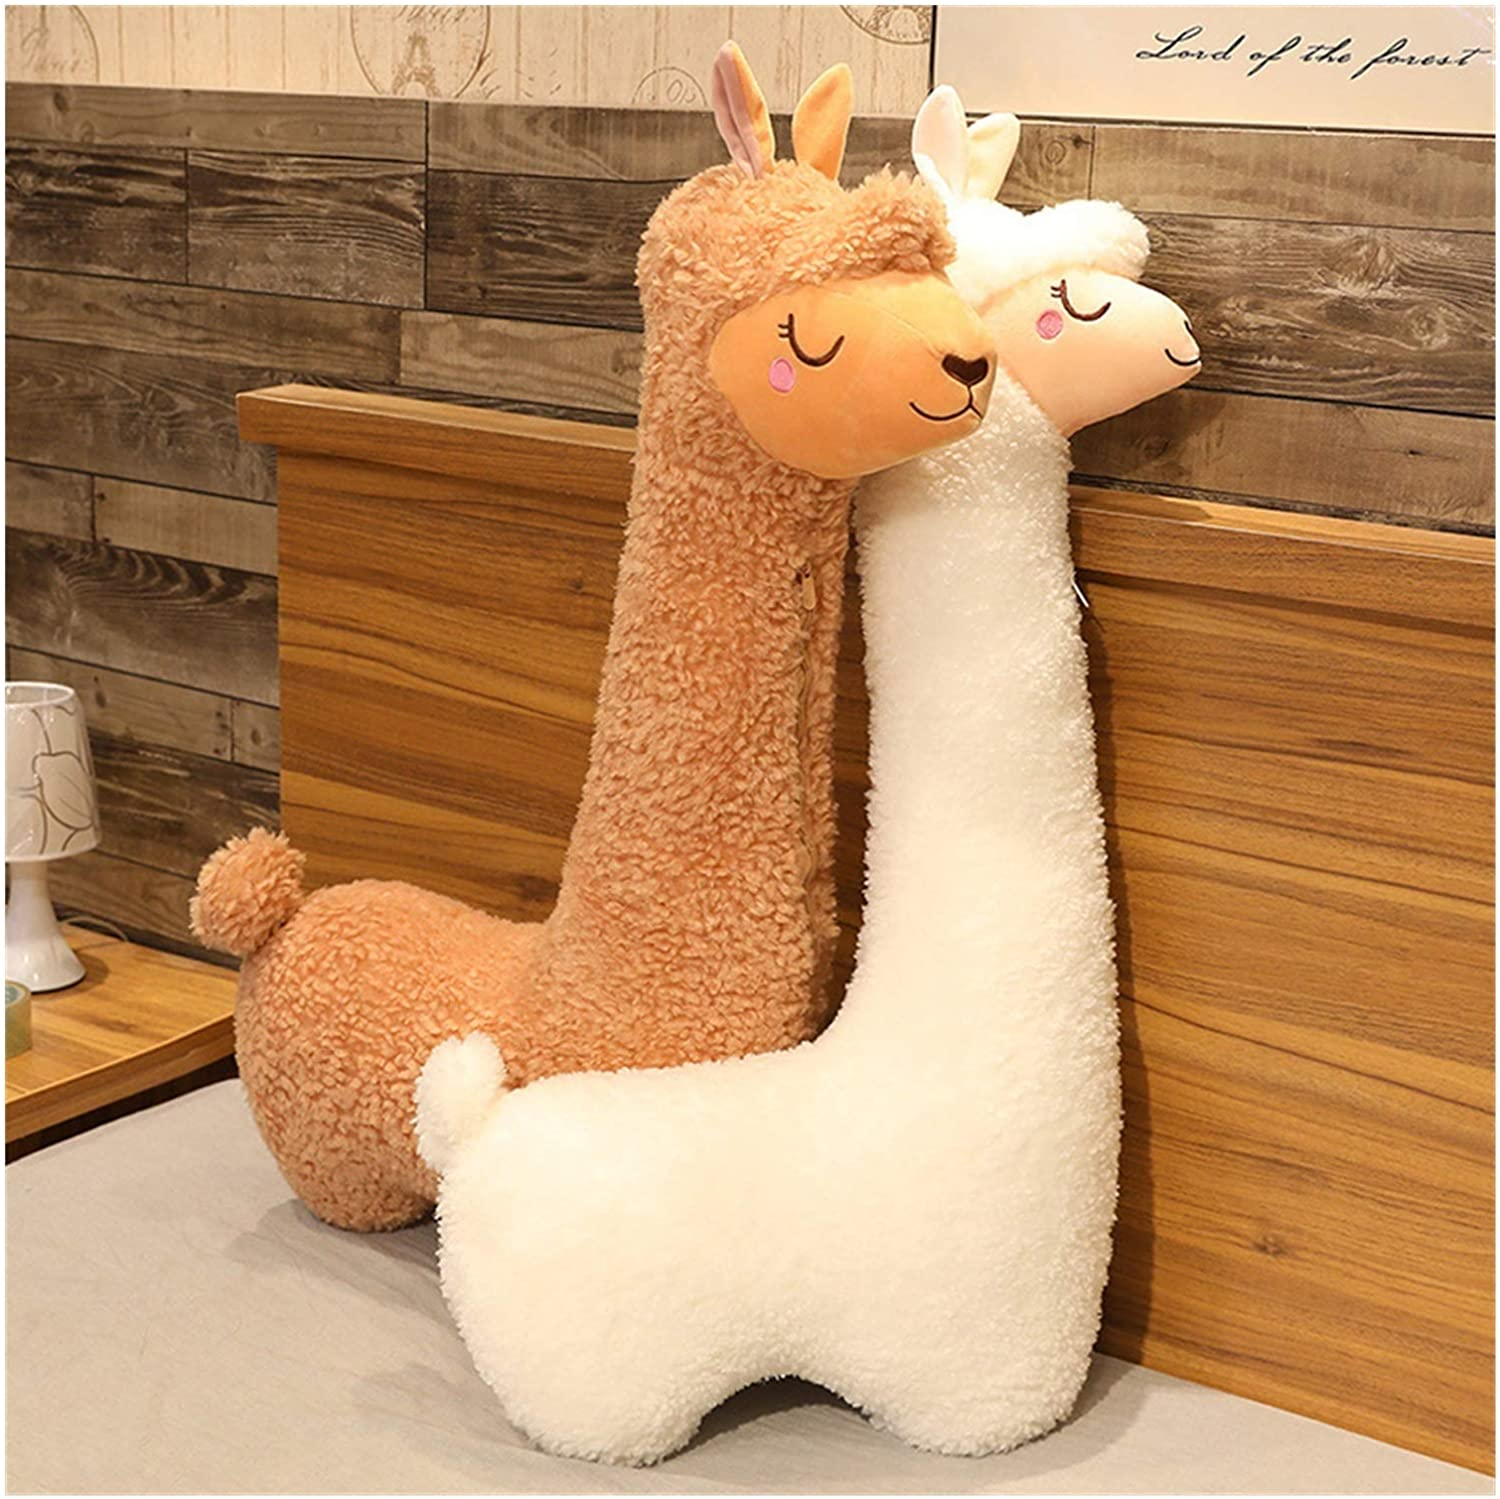 this life size llama body pillow is the